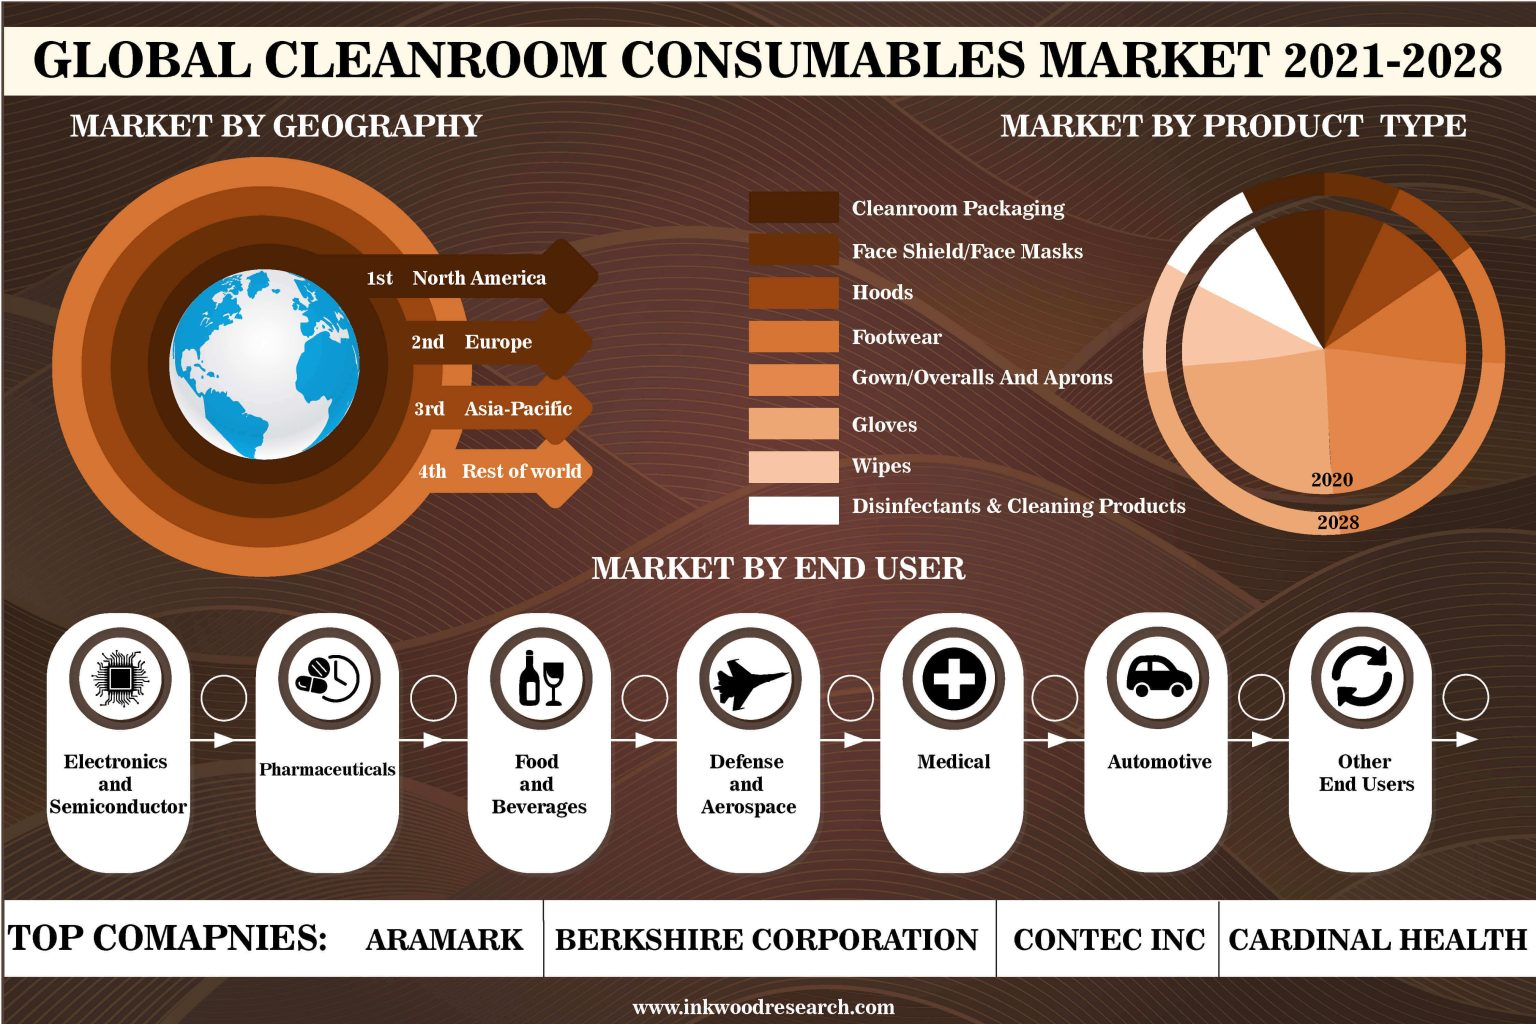 Global Cleanroom Consumables Market to see Demand from Manufacturing Industry